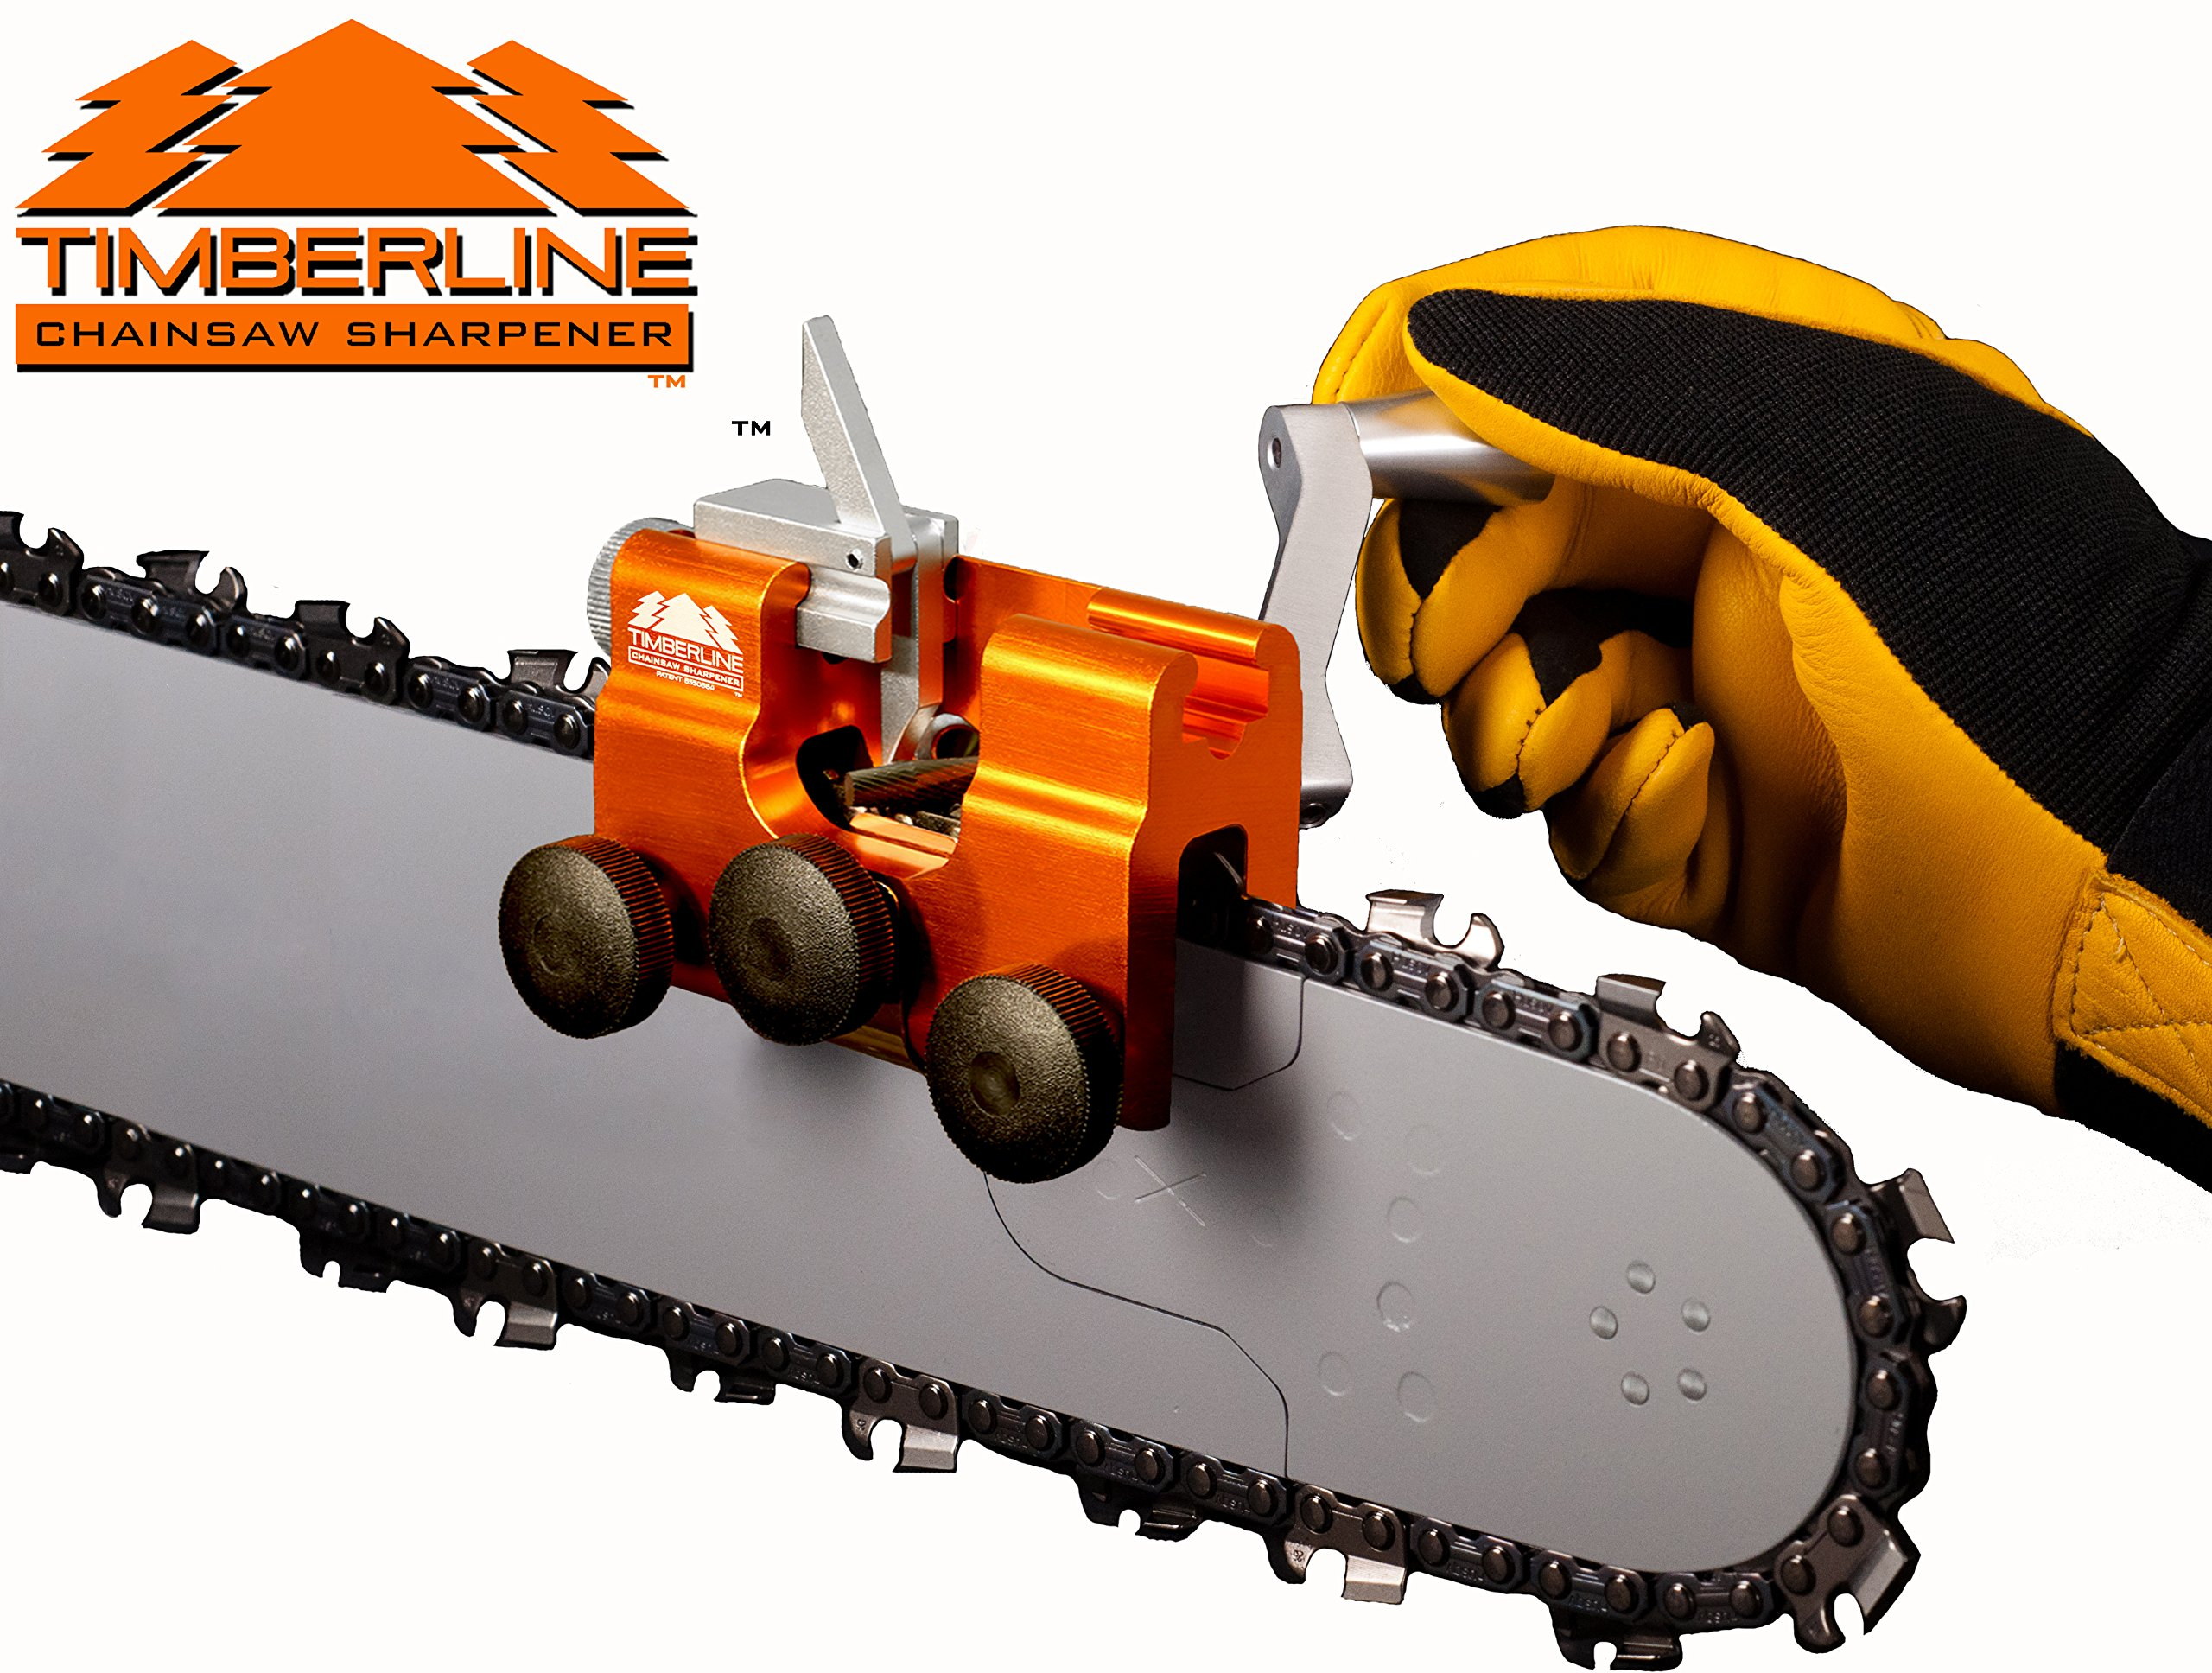 Timberline Chainsaw Sharpener with 13/64'' Carbide Cutter (for 3/8'' pitch Stihl chains)